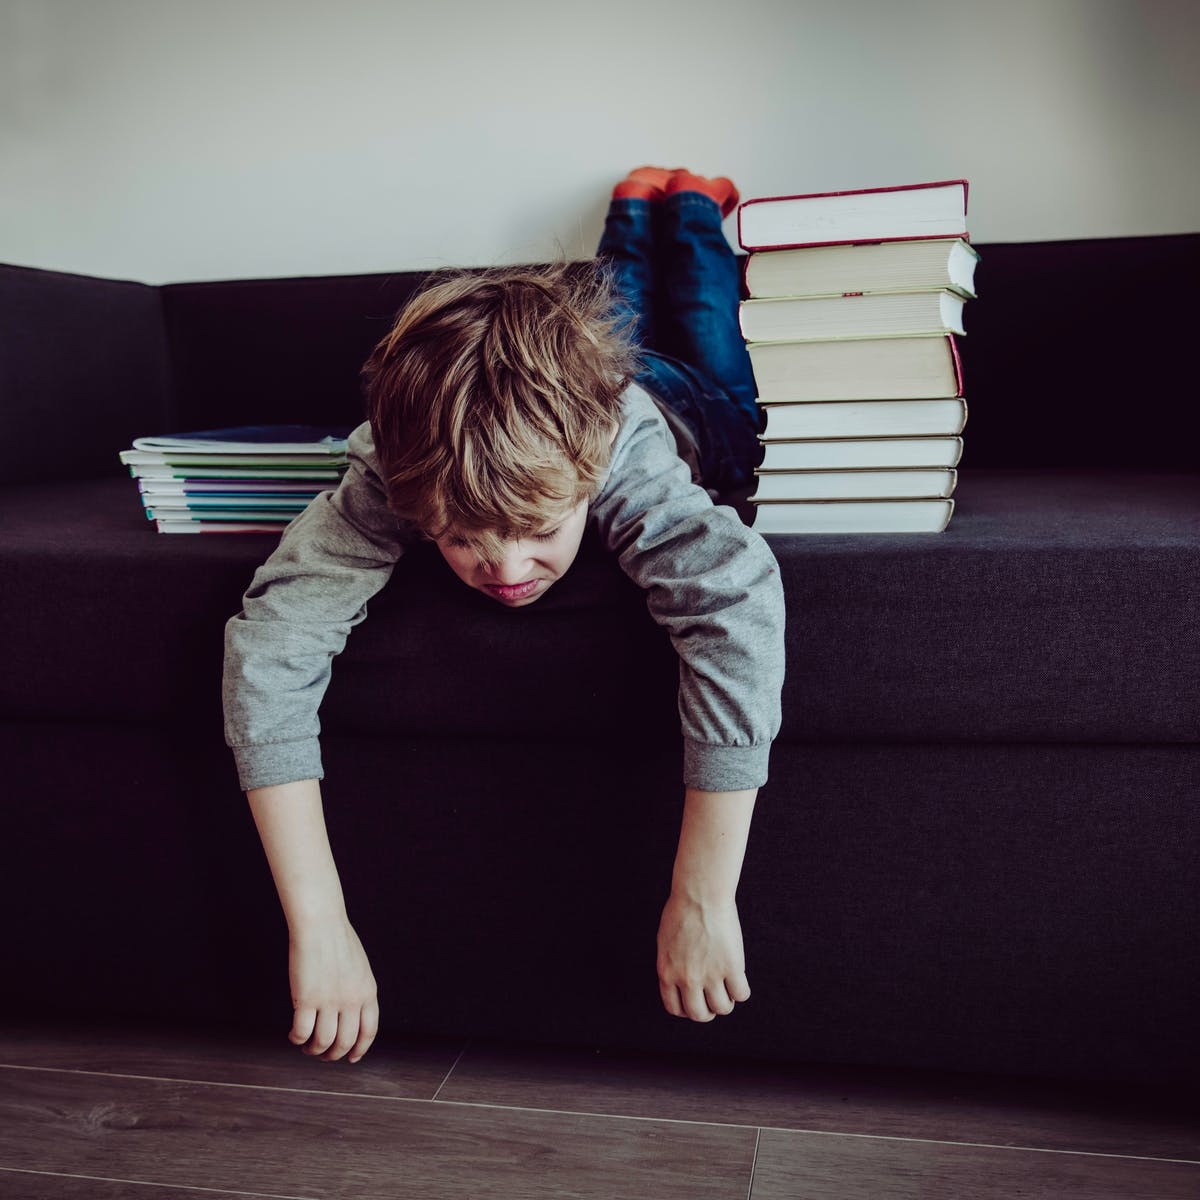 So your child refuses to go to school? Here's how to respond